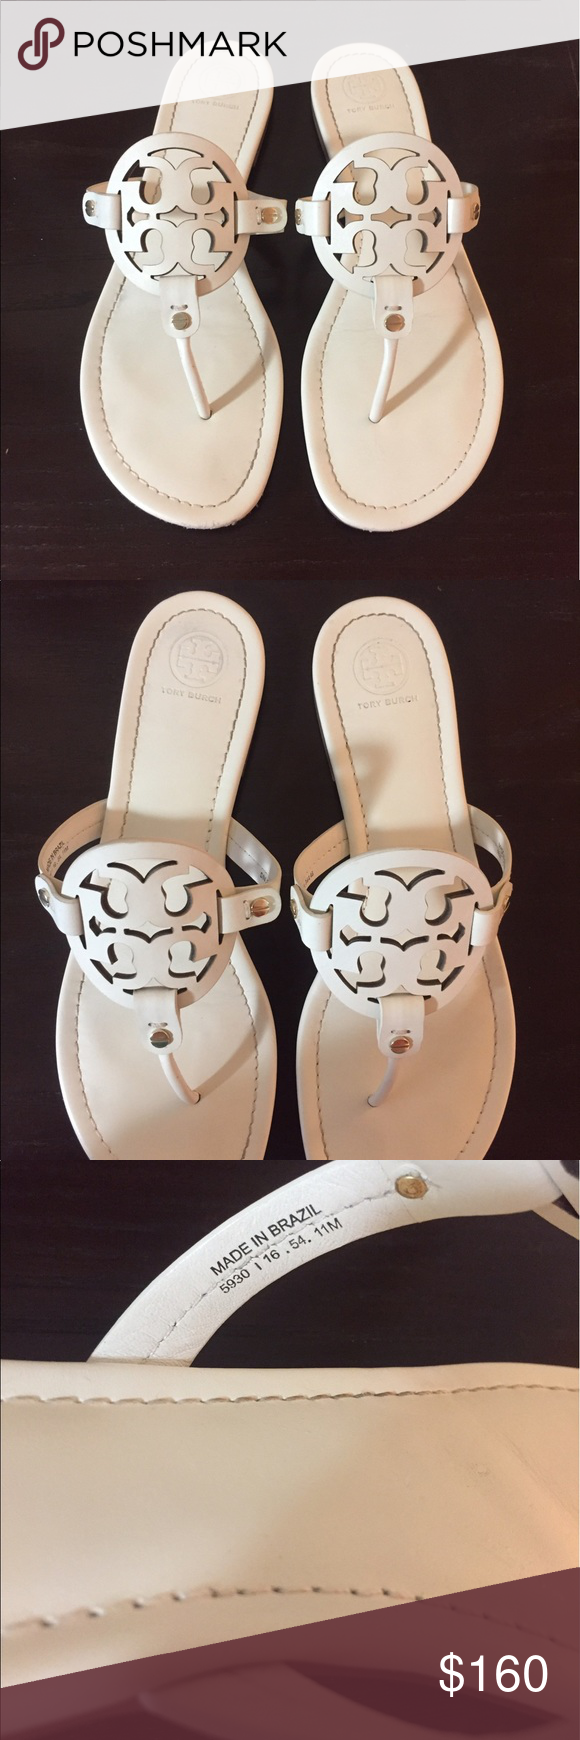 026e1f921964 Tory Burch Miller Sandal Bleach Gently used bleach Miller sandals. The color  is an offwhite. Not a bright white. Size 11M Tory Burch Shoes Sandals